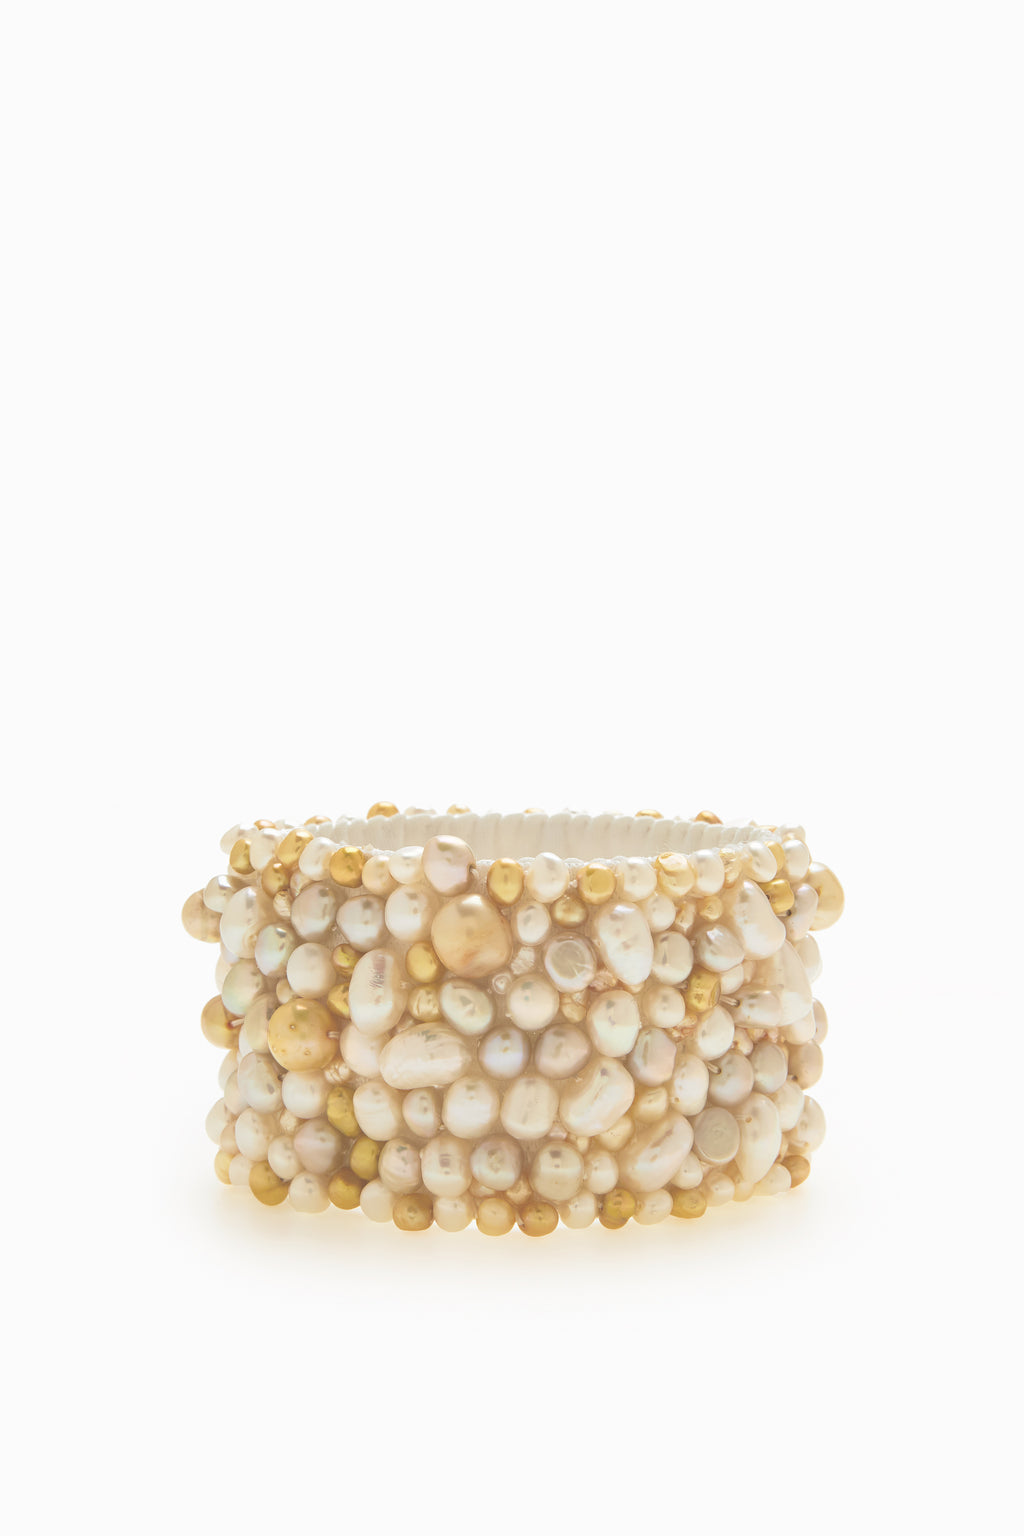 Hand Sewn Stretchy Cuff of Champagne, White and Yellow Freshwater Pearls